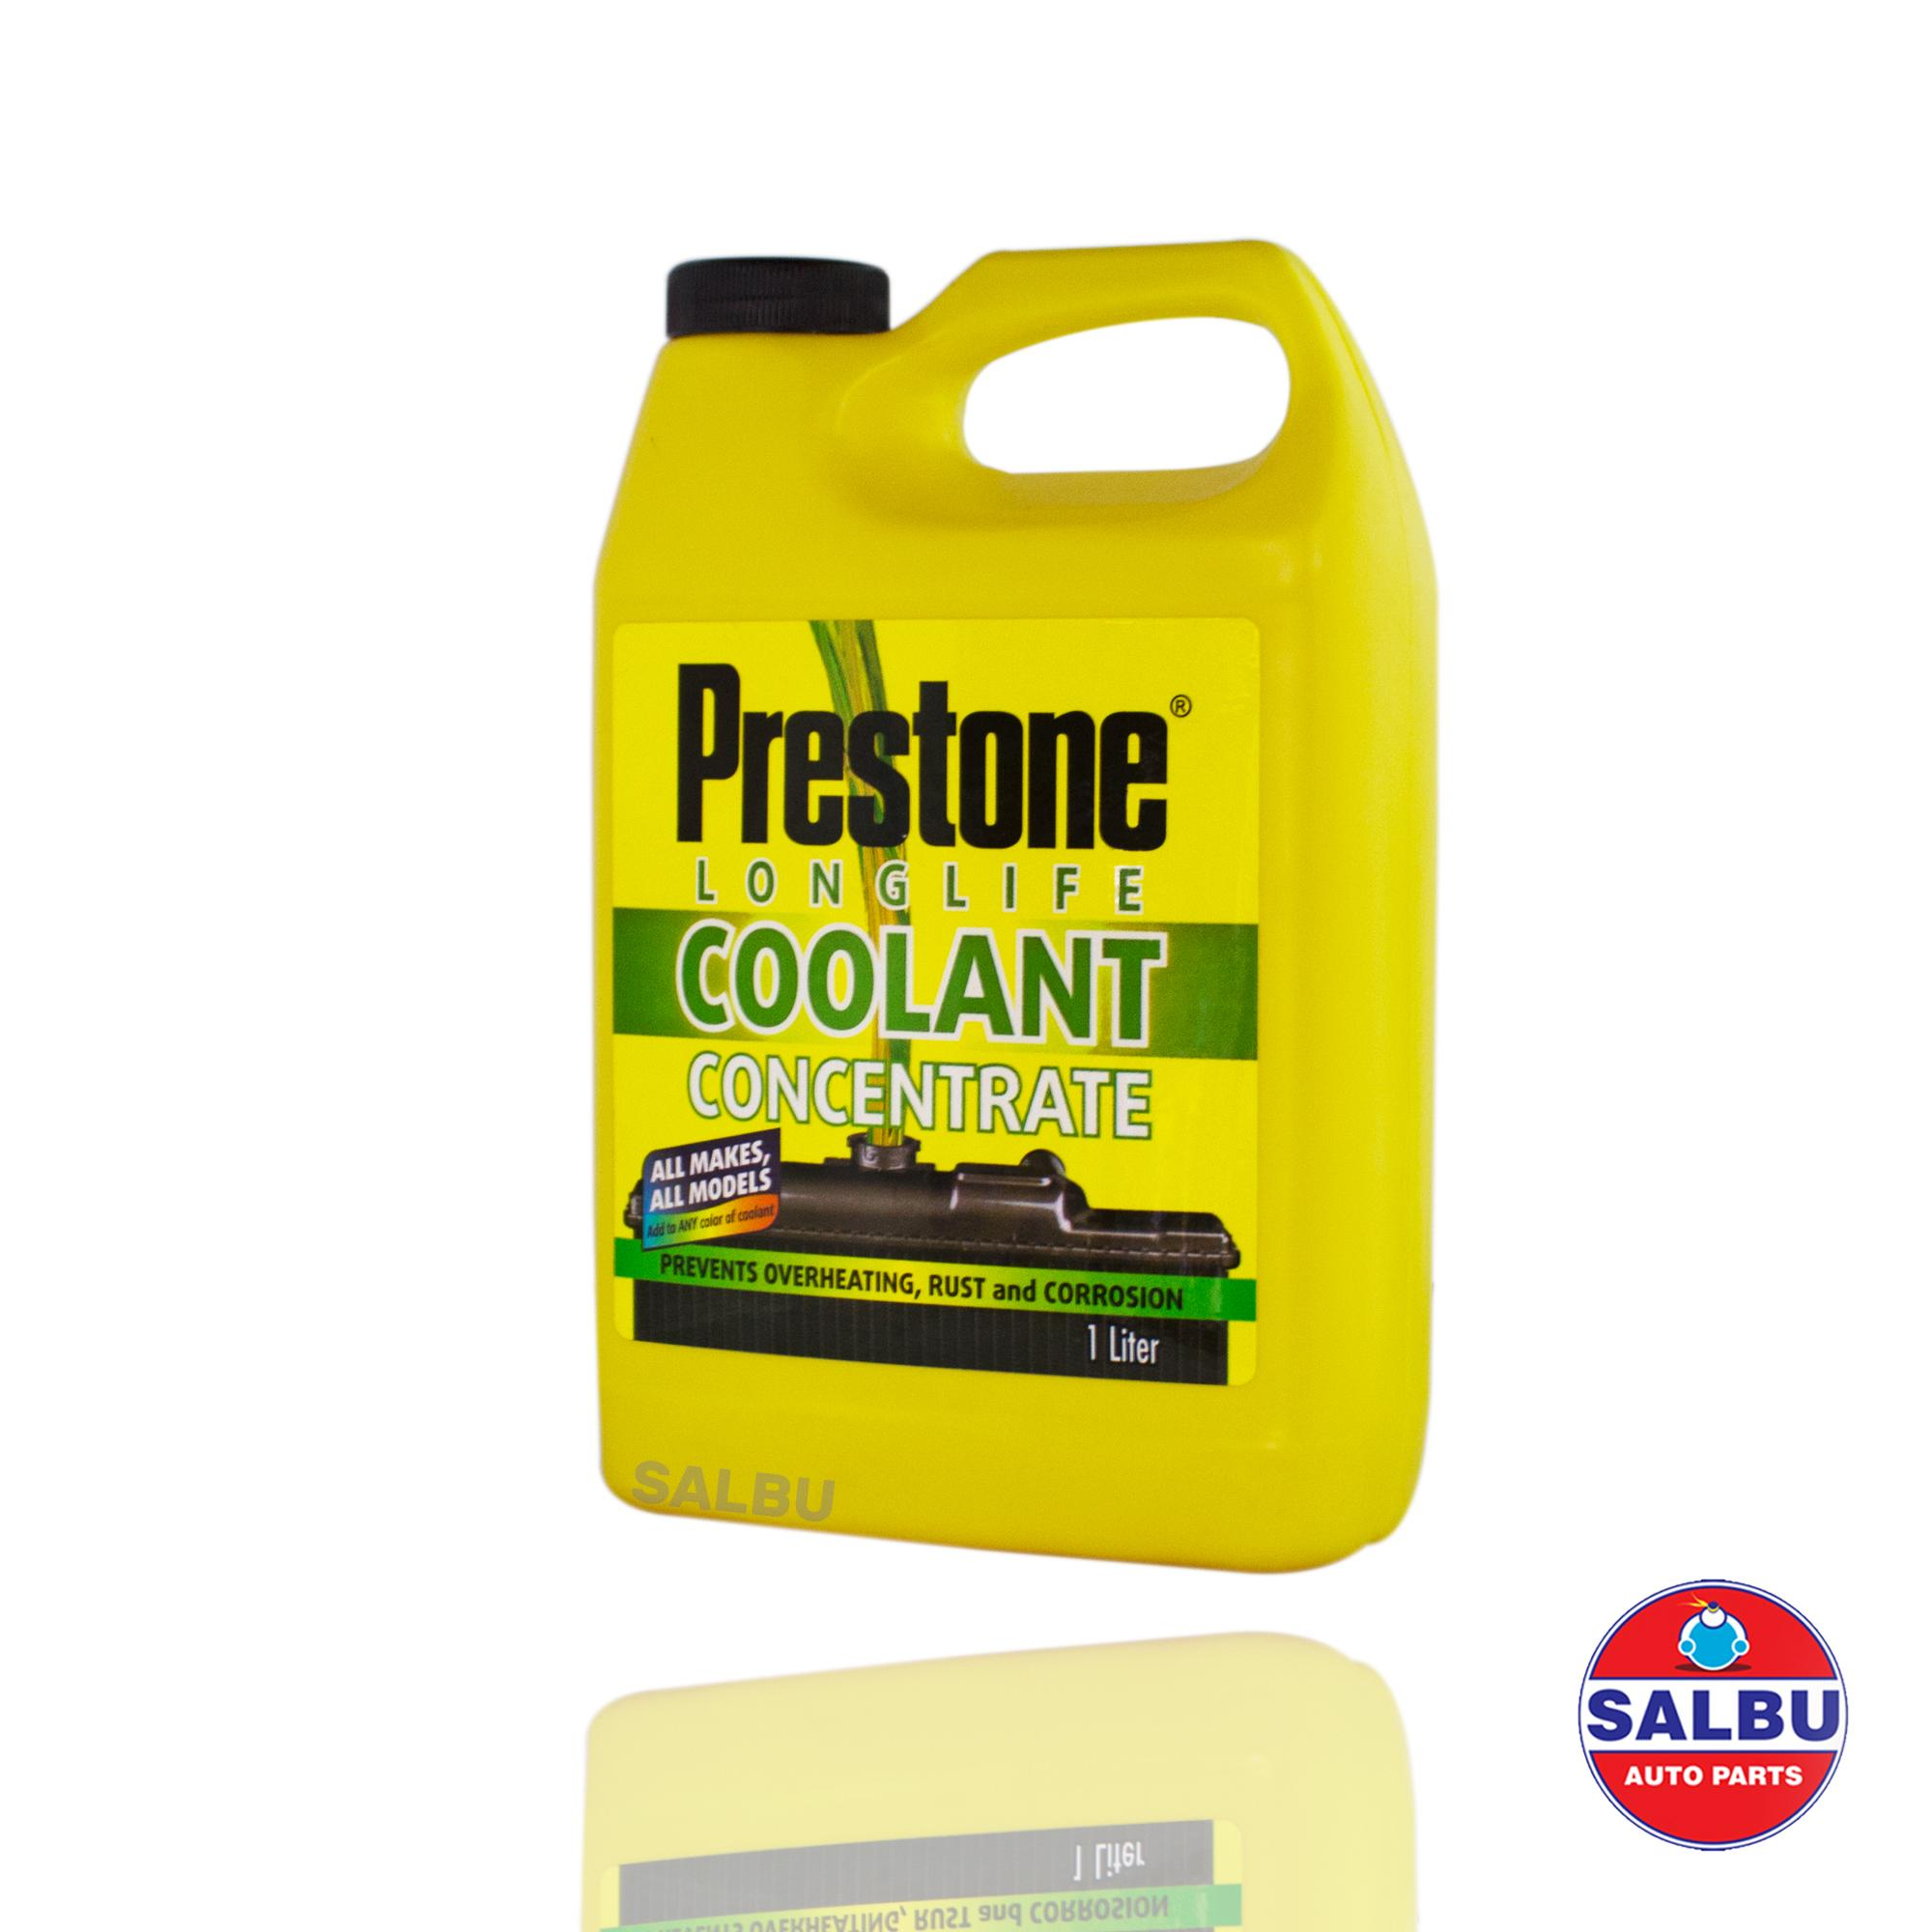 Prestone Long Life Coolant Concentrate 1L